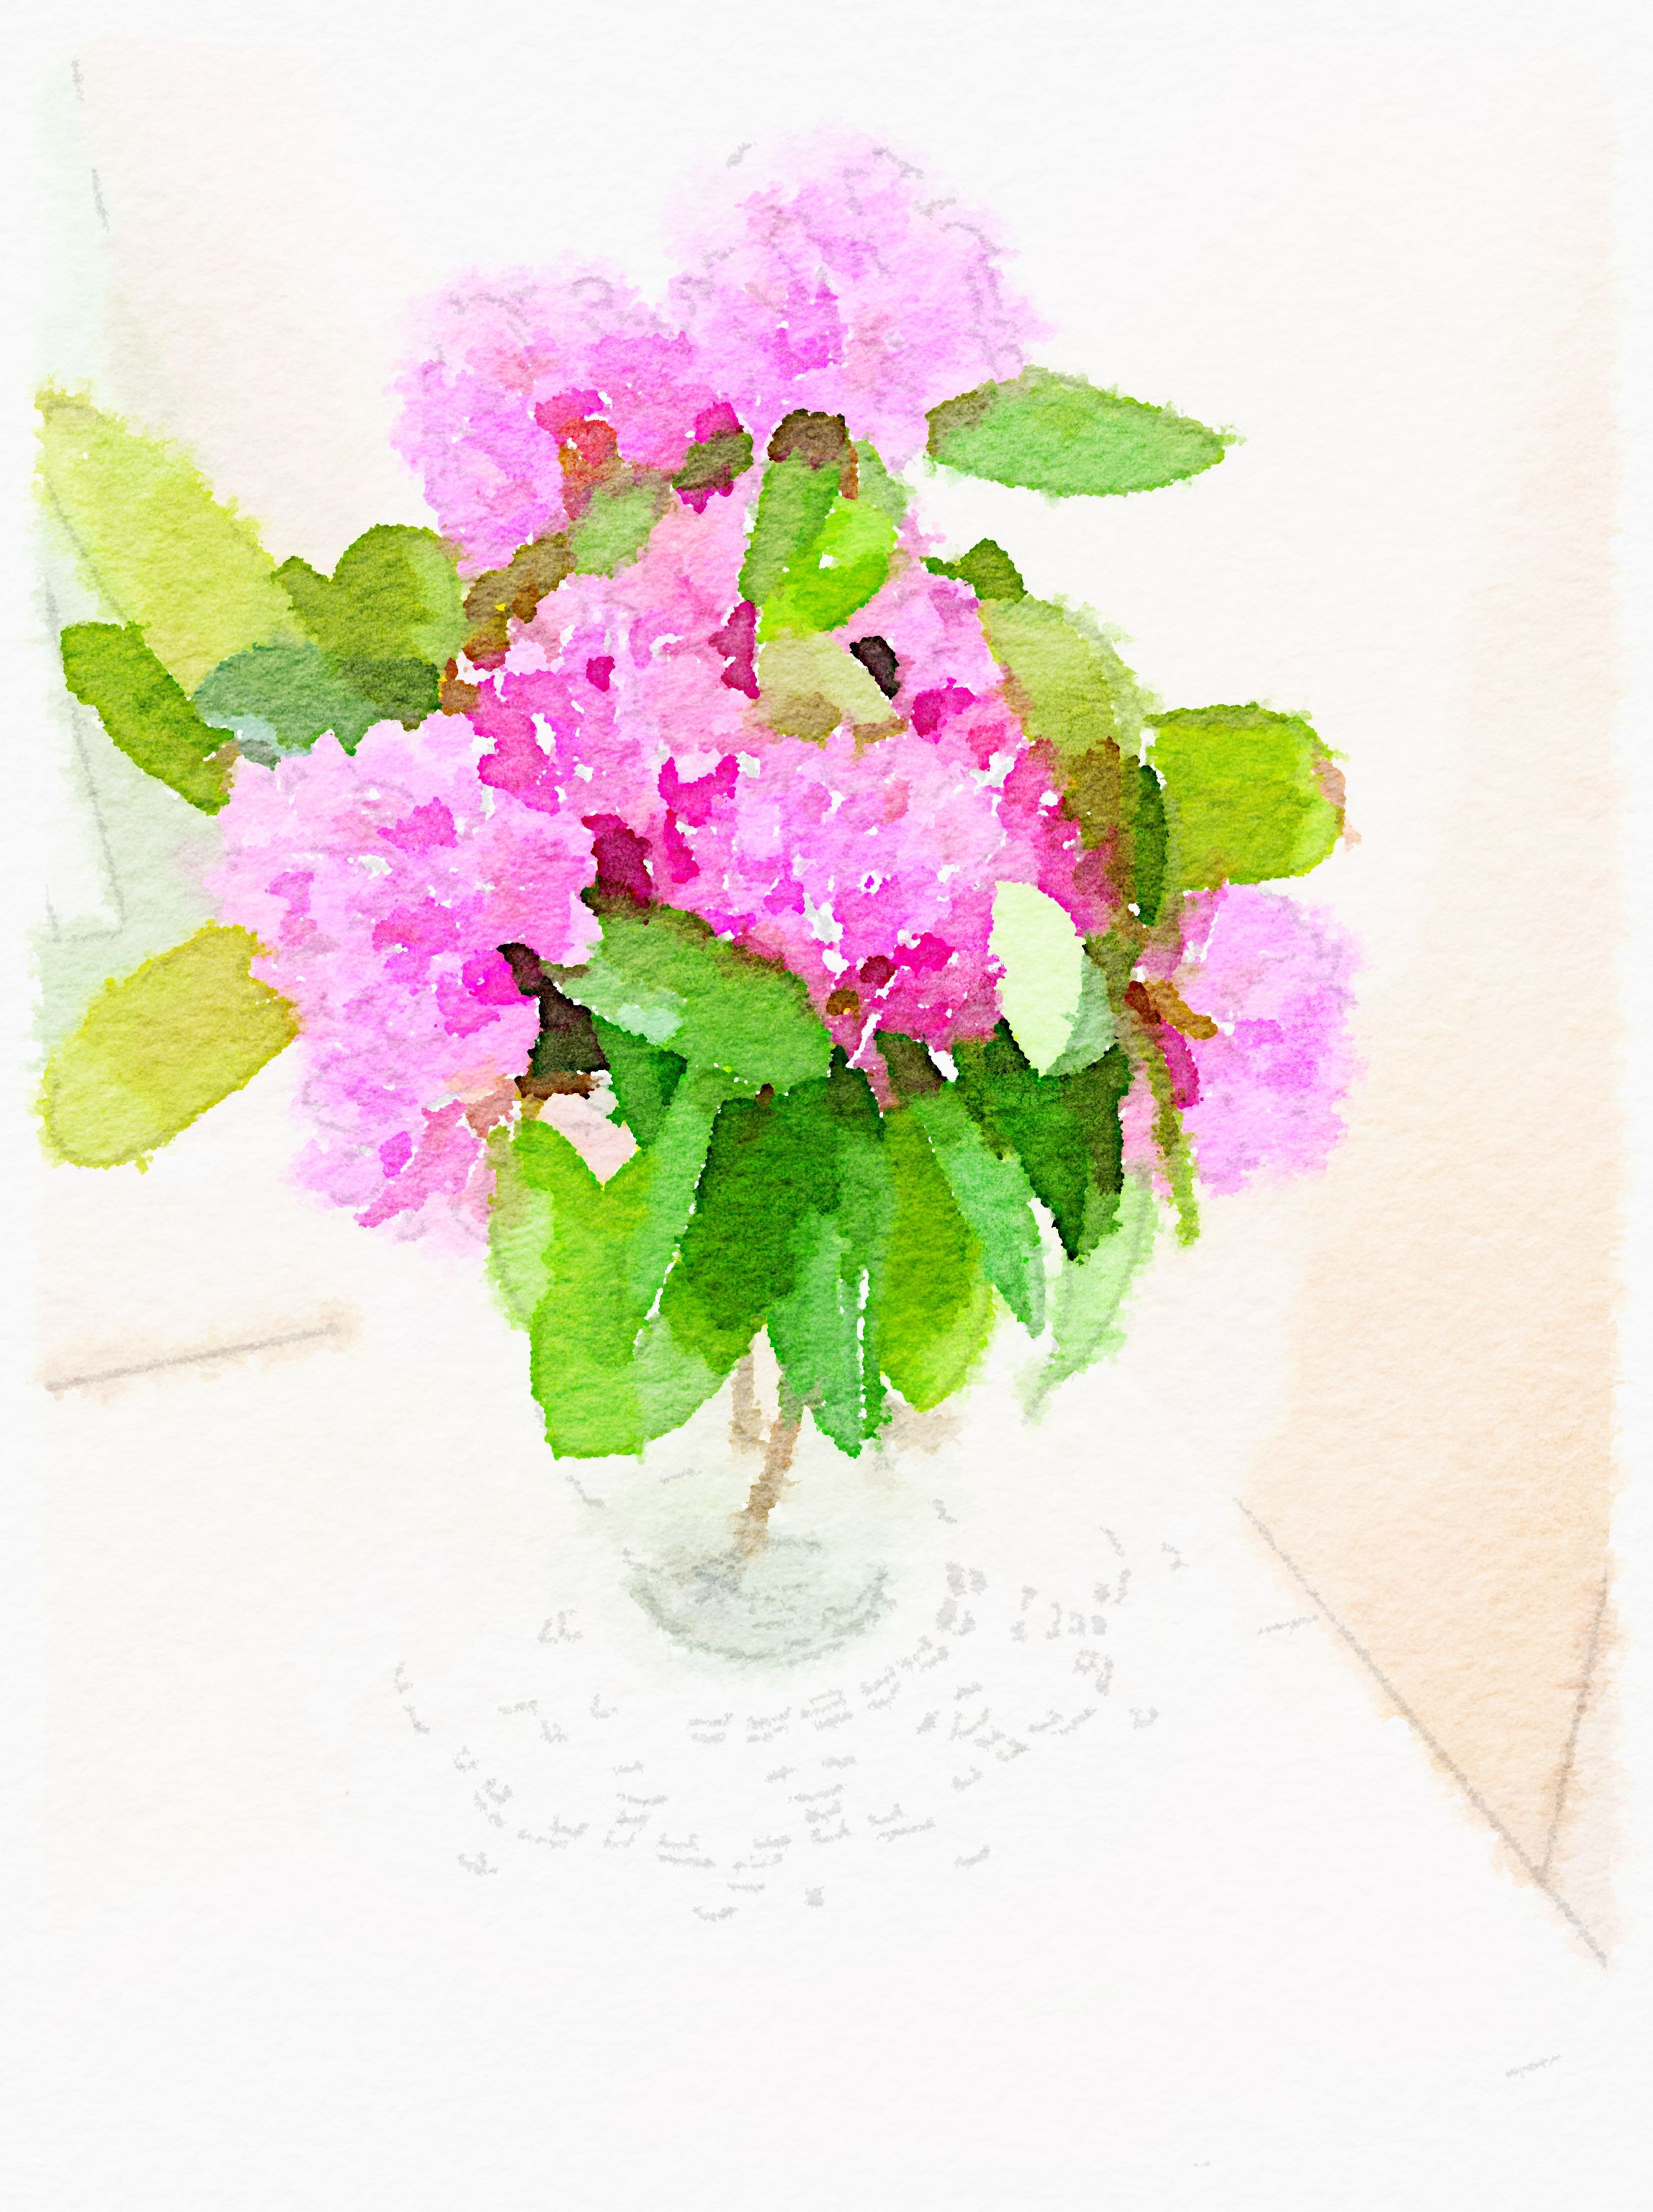 Rhododendron in Vase | Hydrangea | Watercolor, Watercolor paintings on flower wreath painting, bird-and-flower painting, flower bowl painting, flower box painting, flower butterfly painting, bottle flower painting, flower oil paintings christmas, flower bed painting, flower table painting, candle painting, flower girl painting, flower white painting, frame painting, flower light painting, modern palette knife painting, flower mirror painting, flower vases with flowers, flower still life oil paintings, flower window painting, flower stand painting,